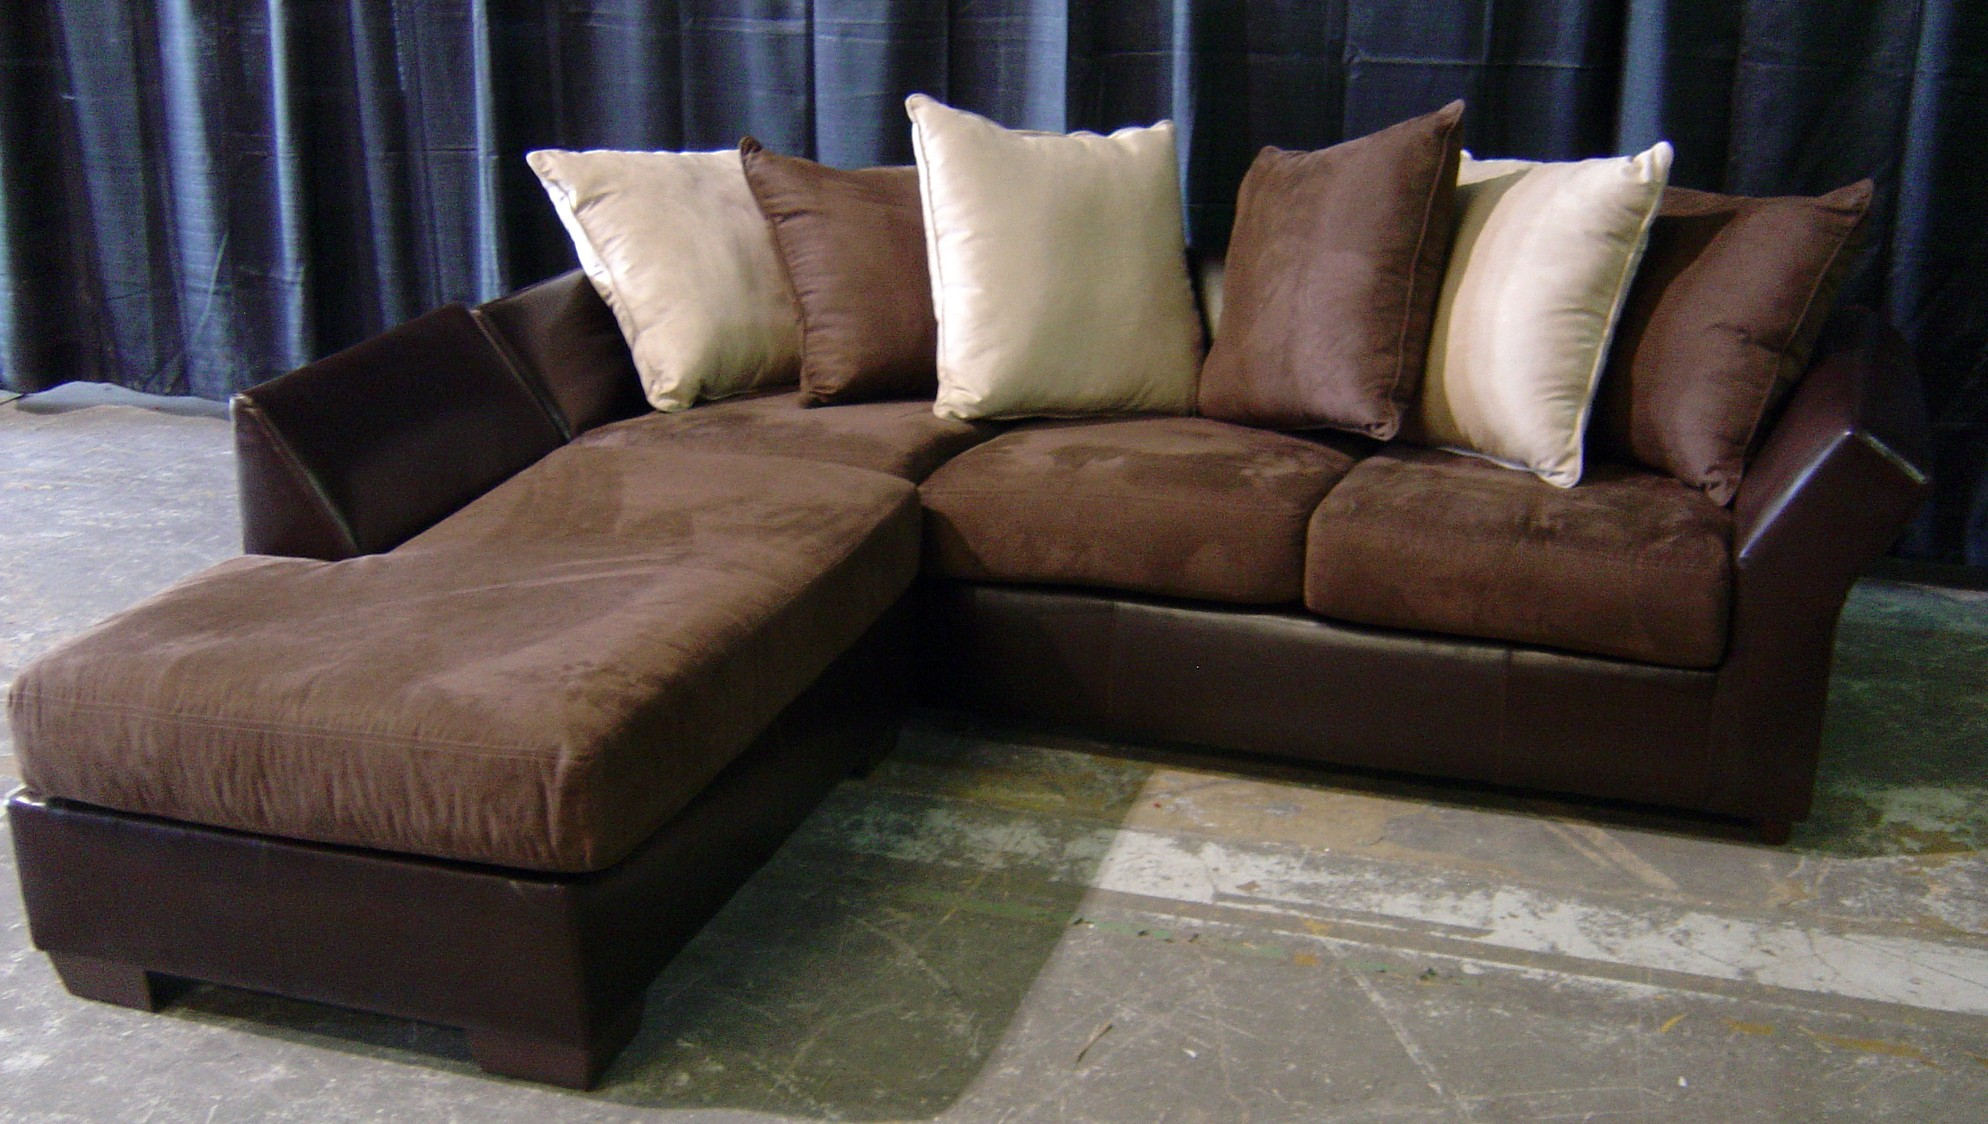 cleaning brown vintage simple taffette chaise designs lounge leather